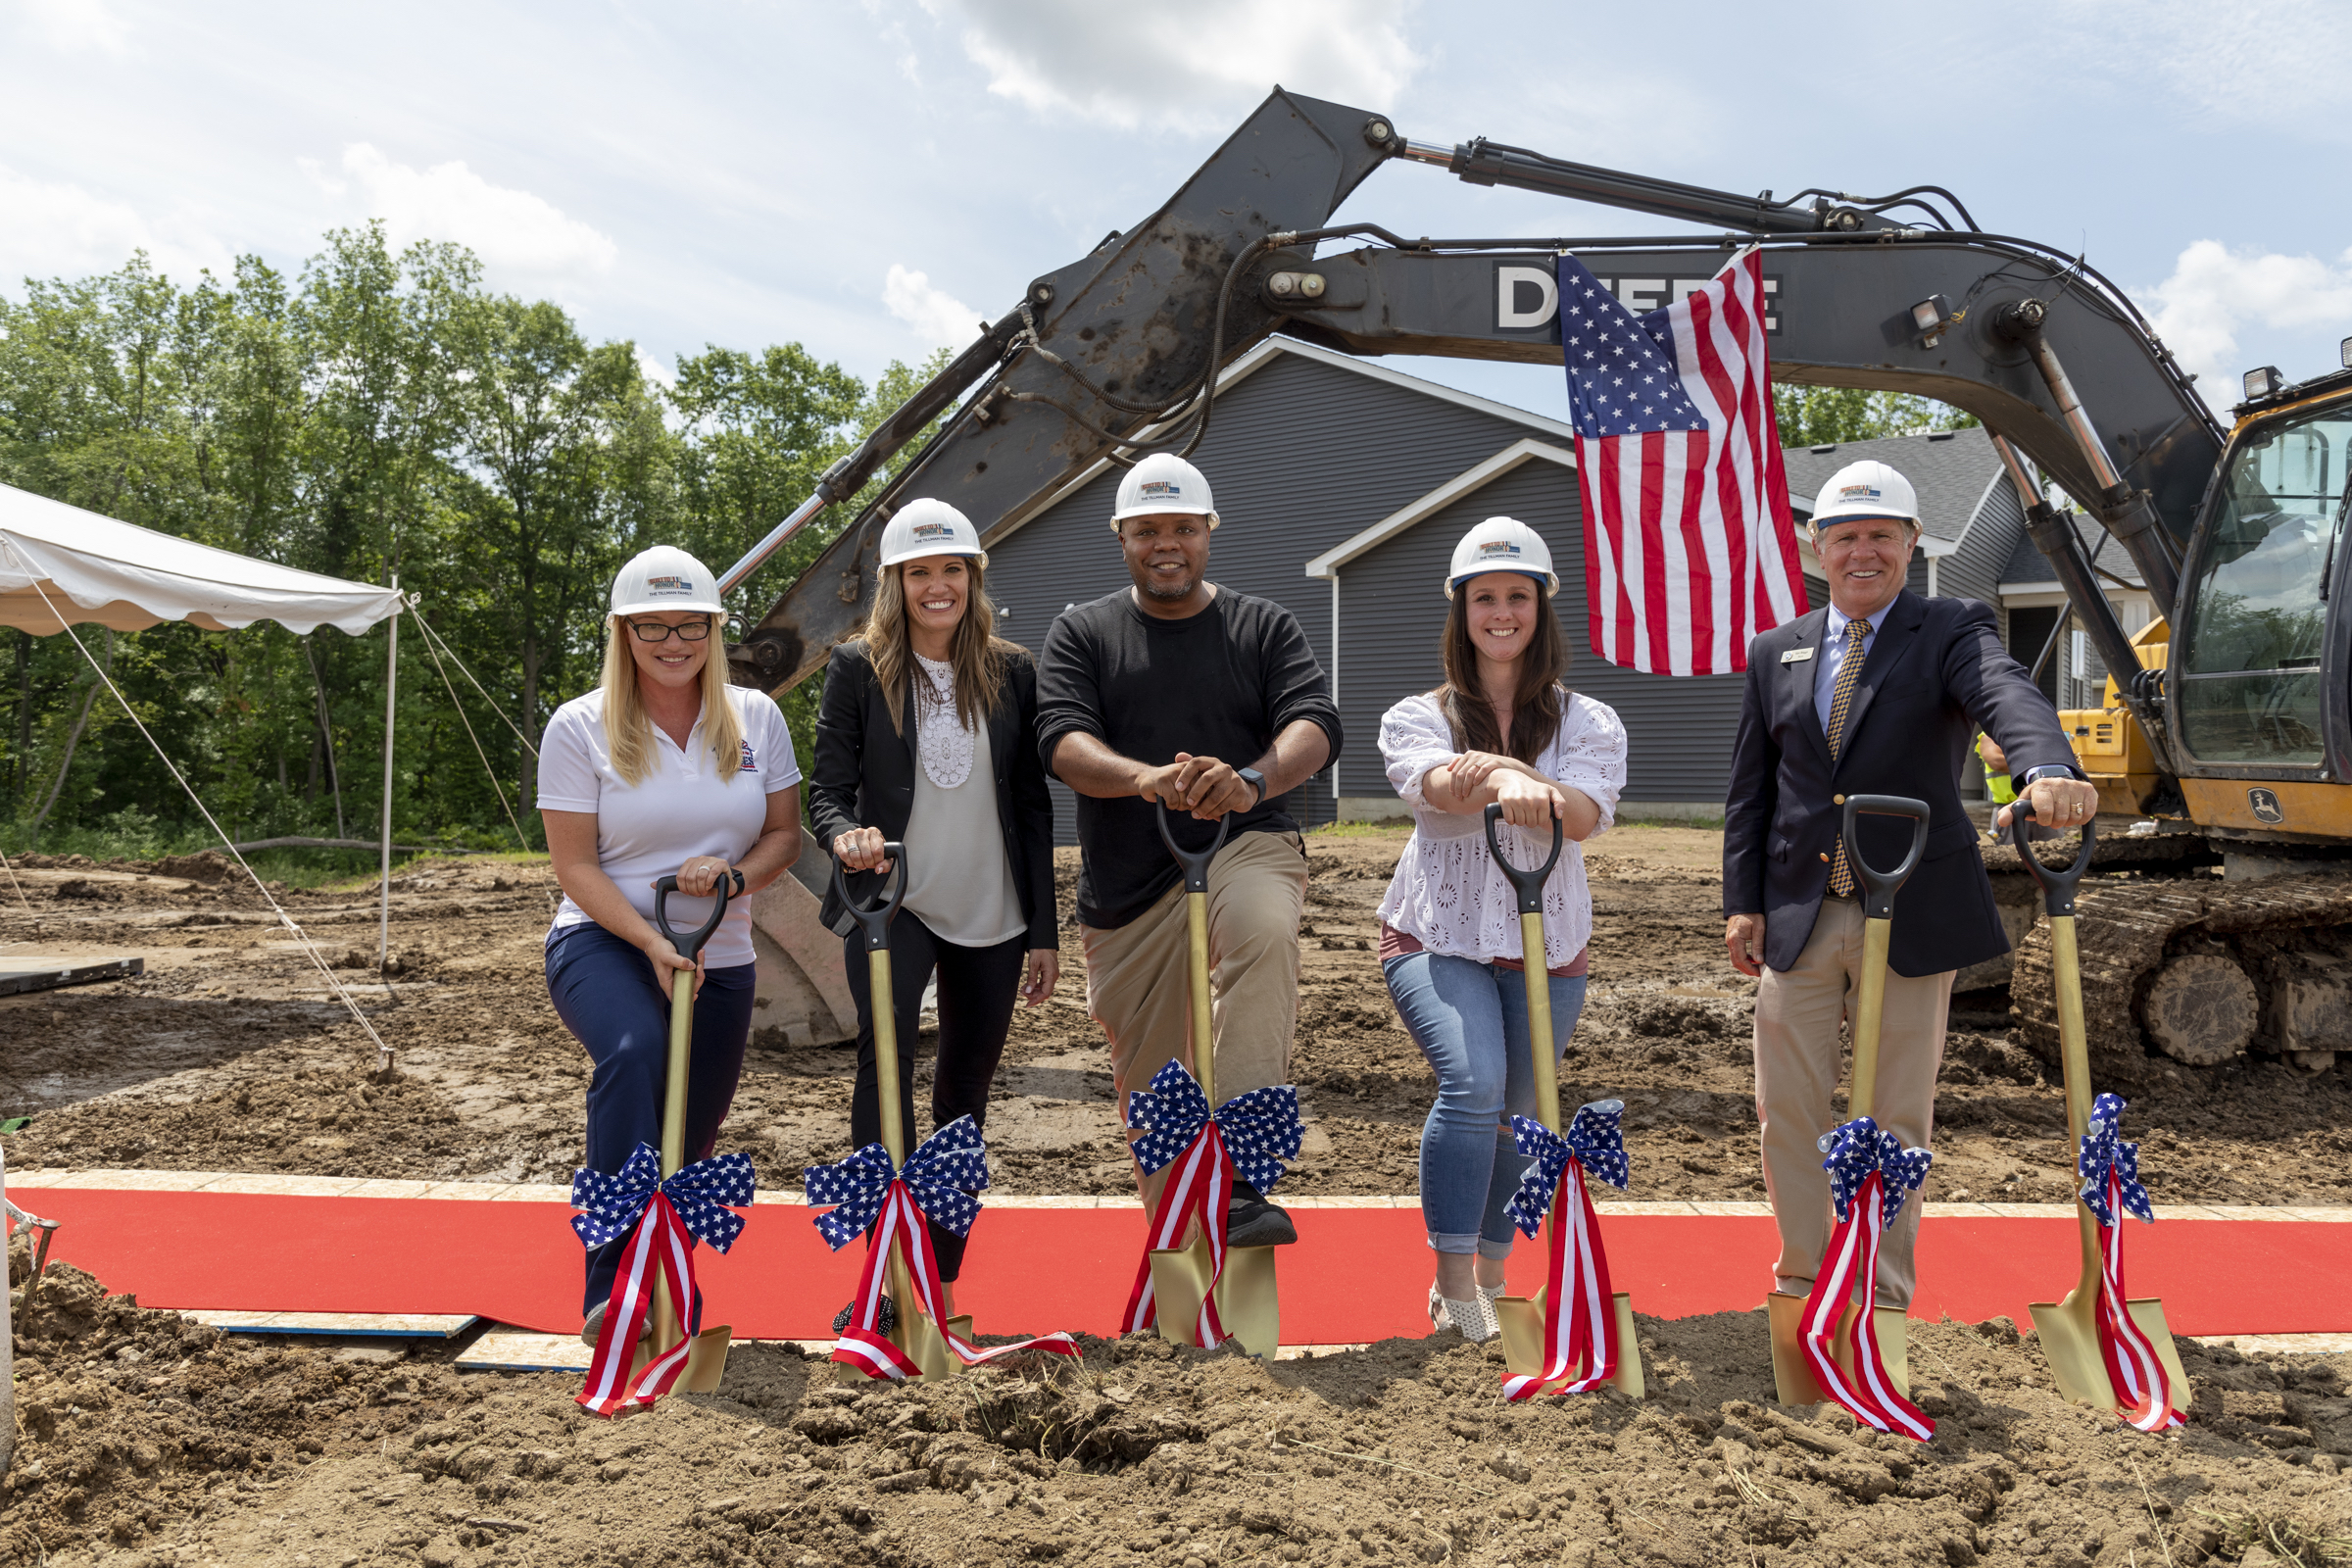 PulteGroup's Built to Honor Program Presented with Pulte Family Charitable Foundation Grant